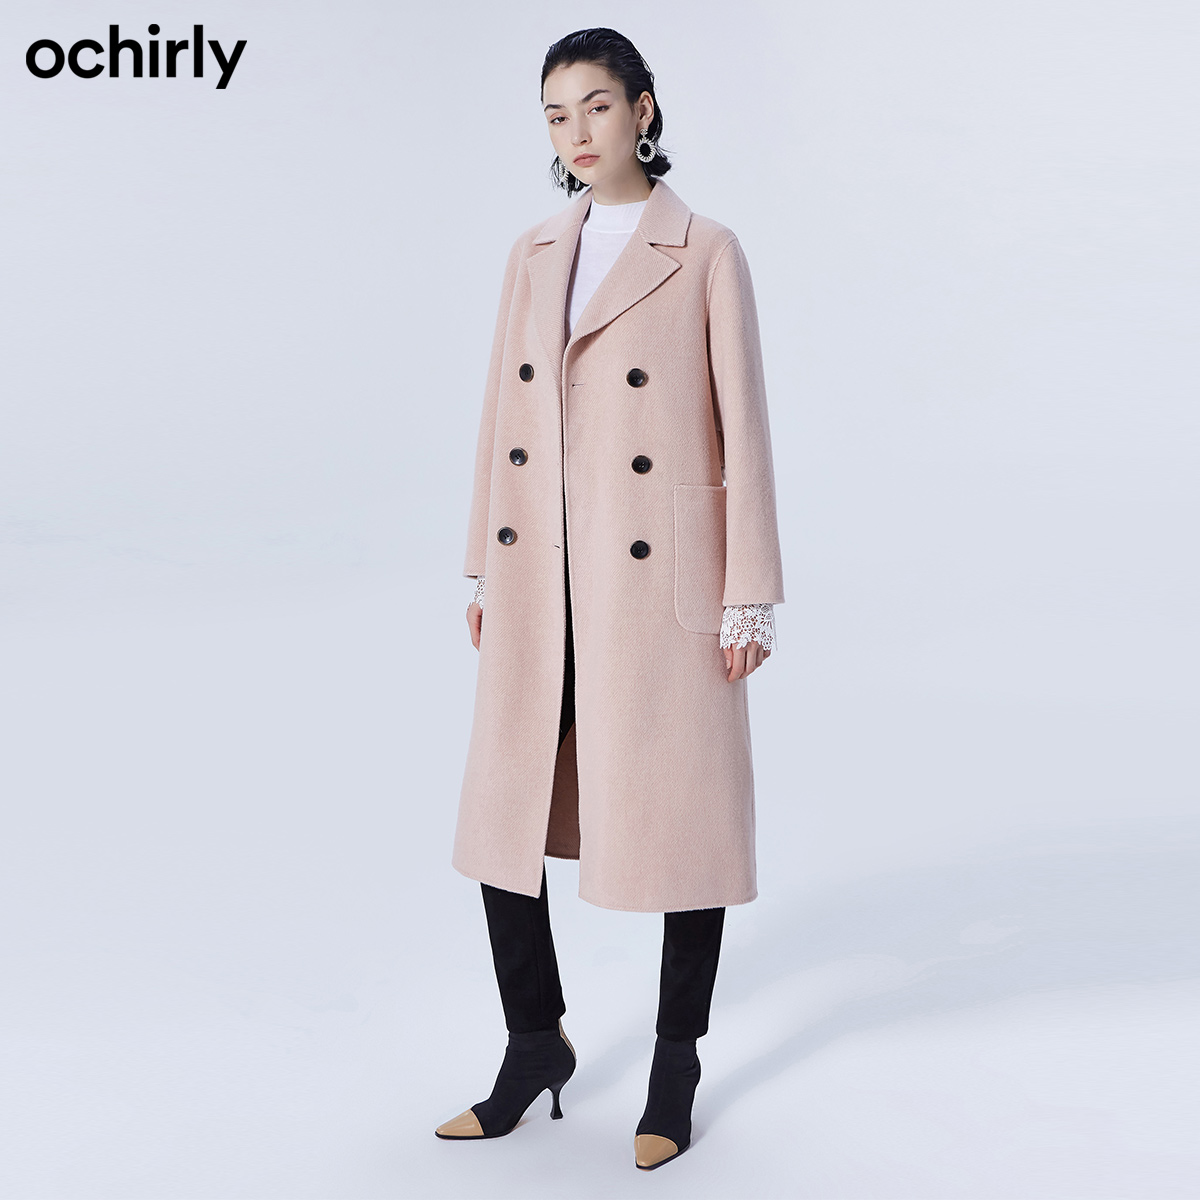 Ochirly Ou Shili wool double faced woolen overcoat for women 1zy4341310